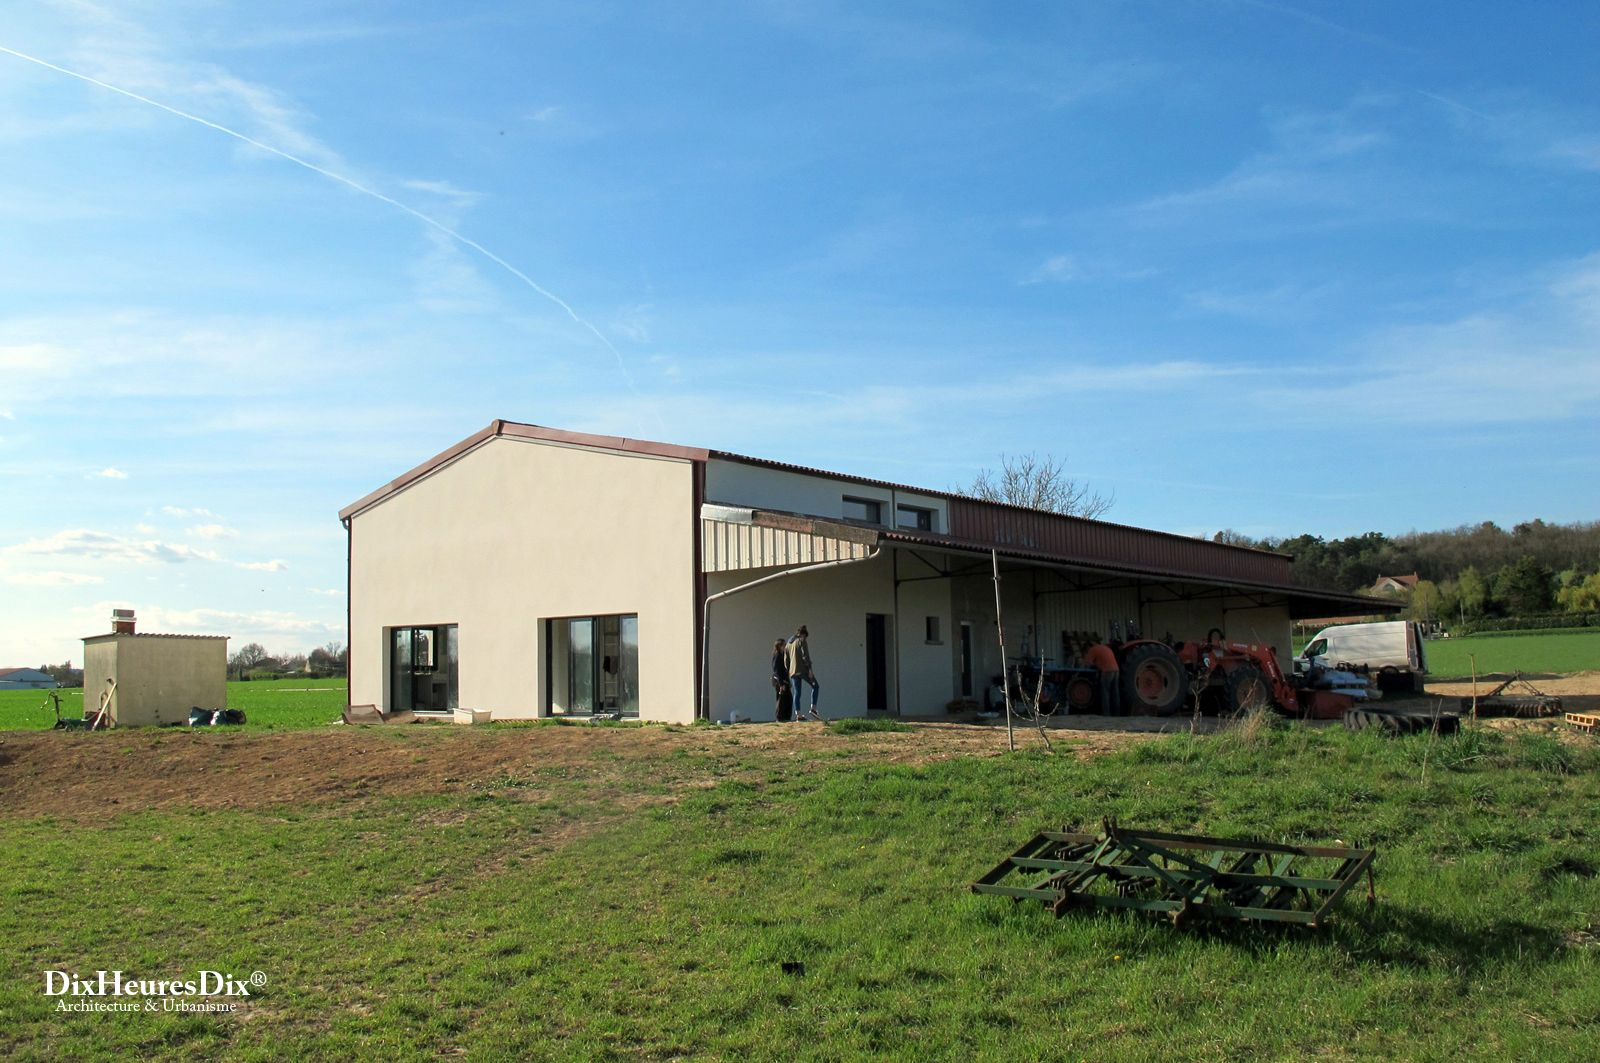 Reconversion Architecte Reconversion D Un Hangar Agricole Dix Heures Dix